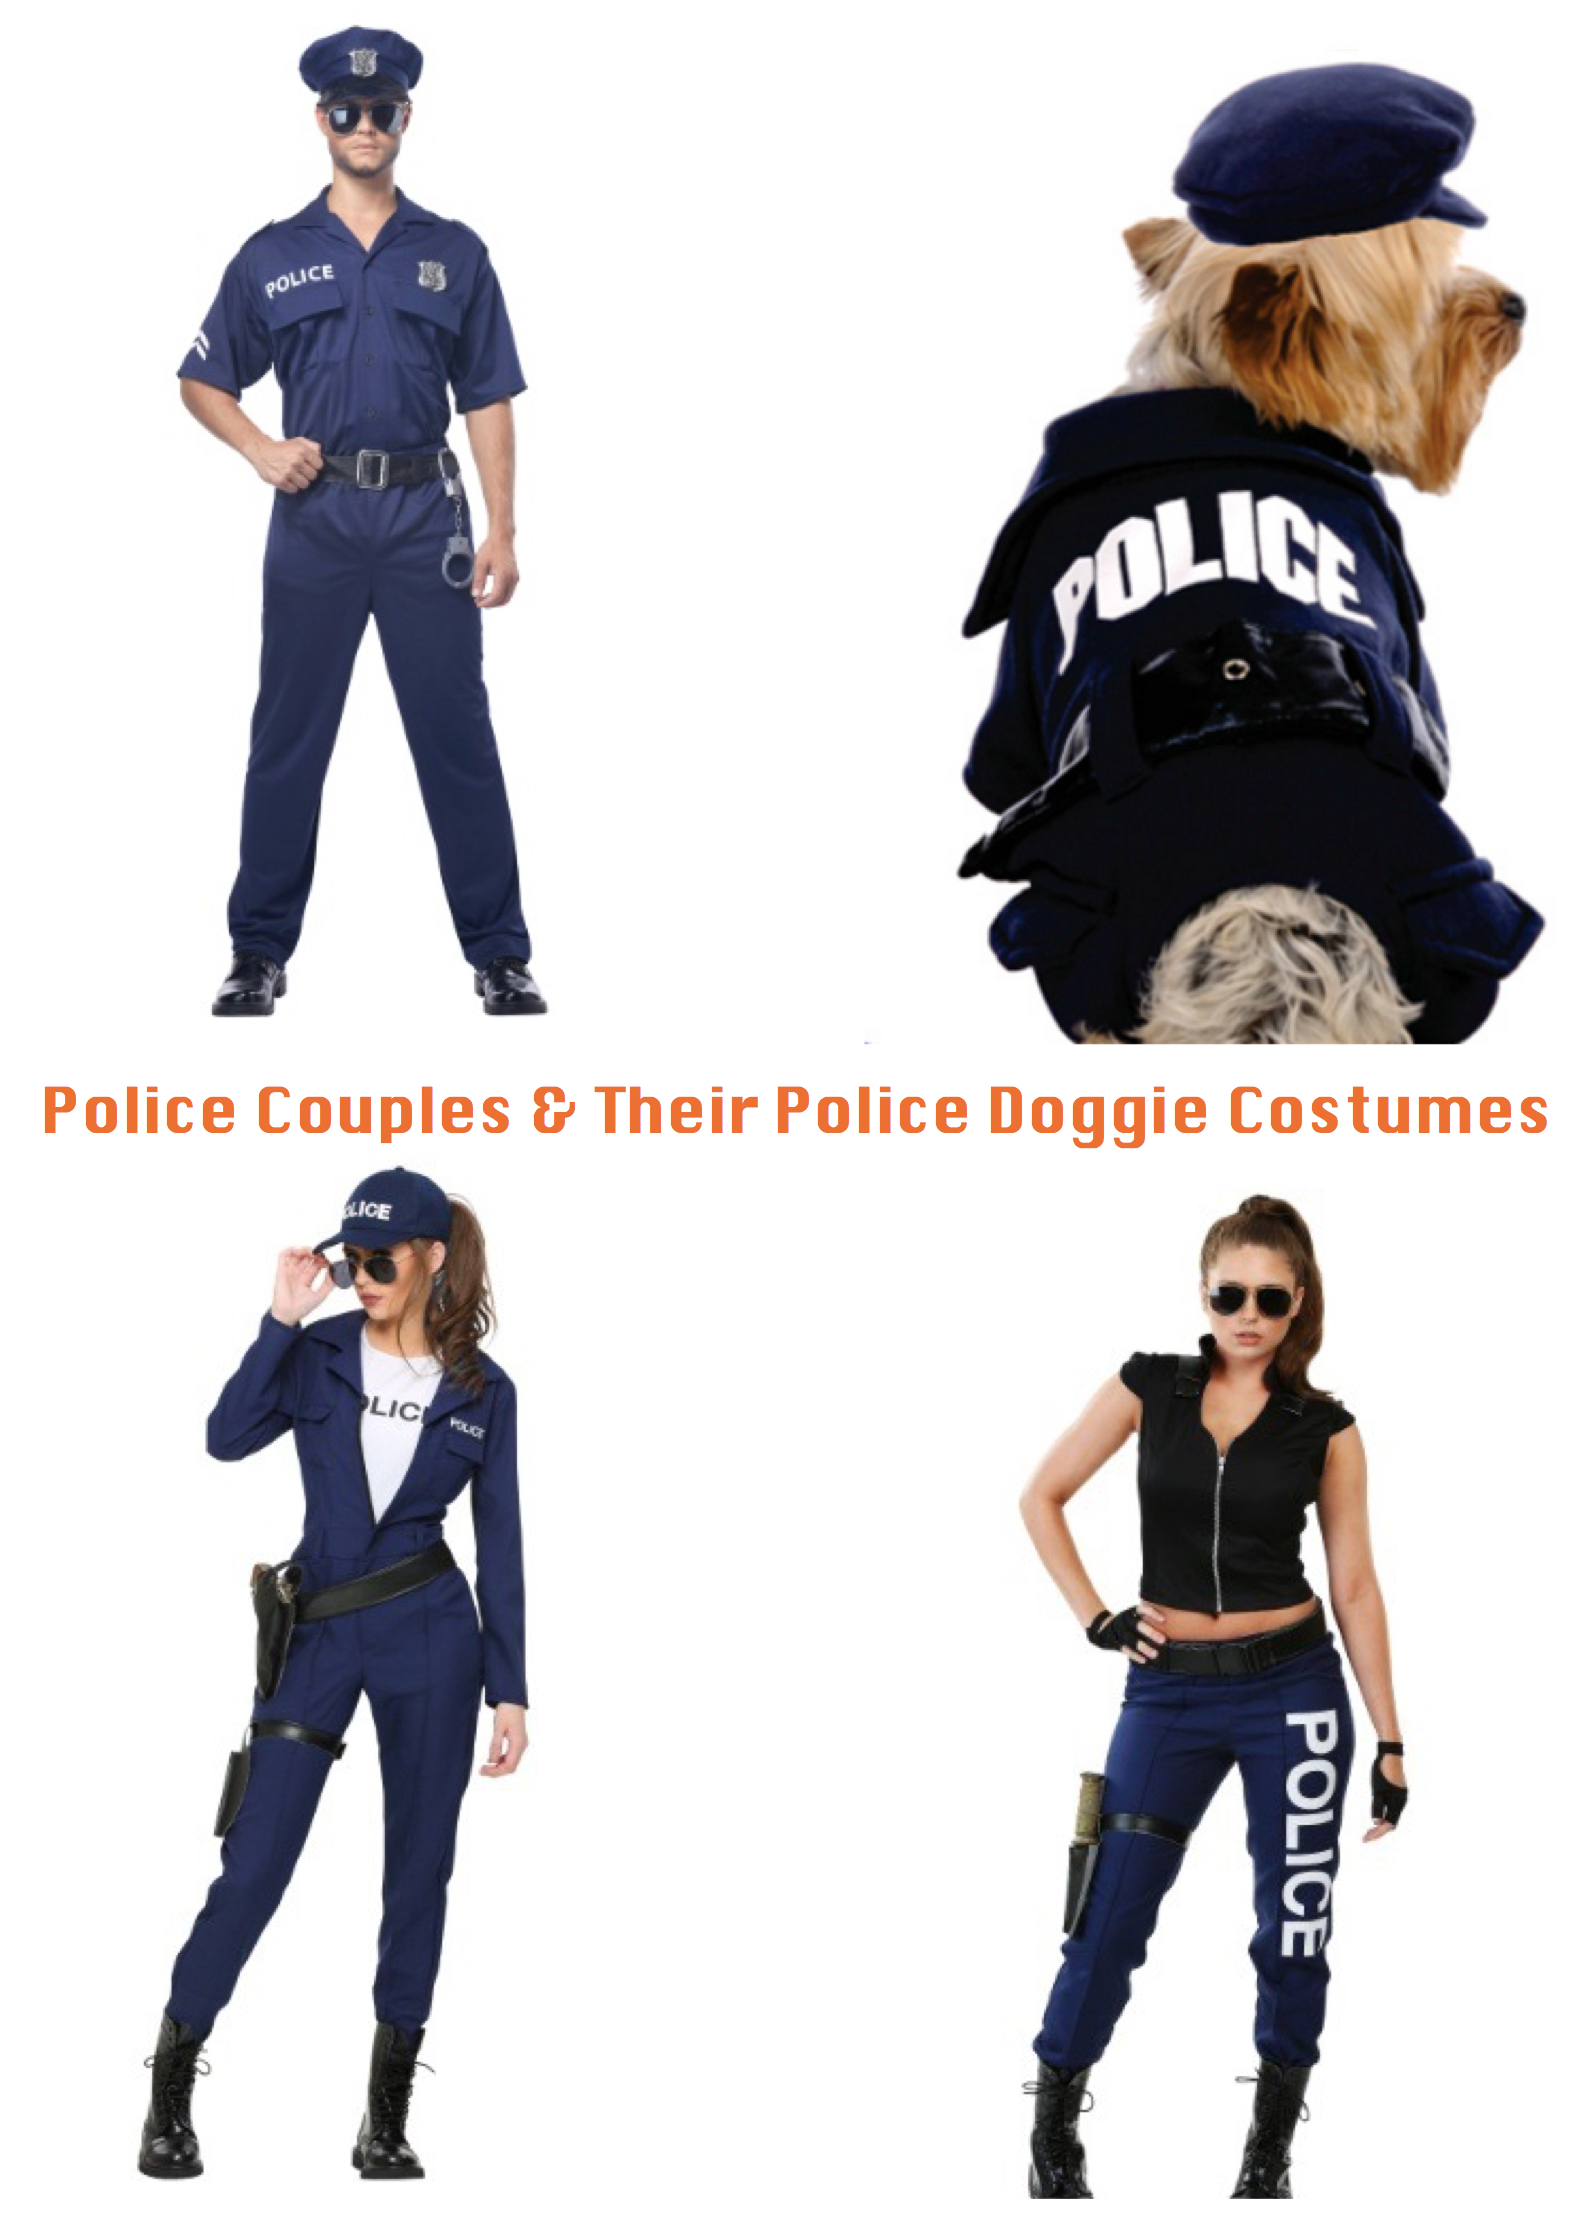 Police Couples & Their Police Doggie Costumes,Matching Couples & Their Dog Costumes